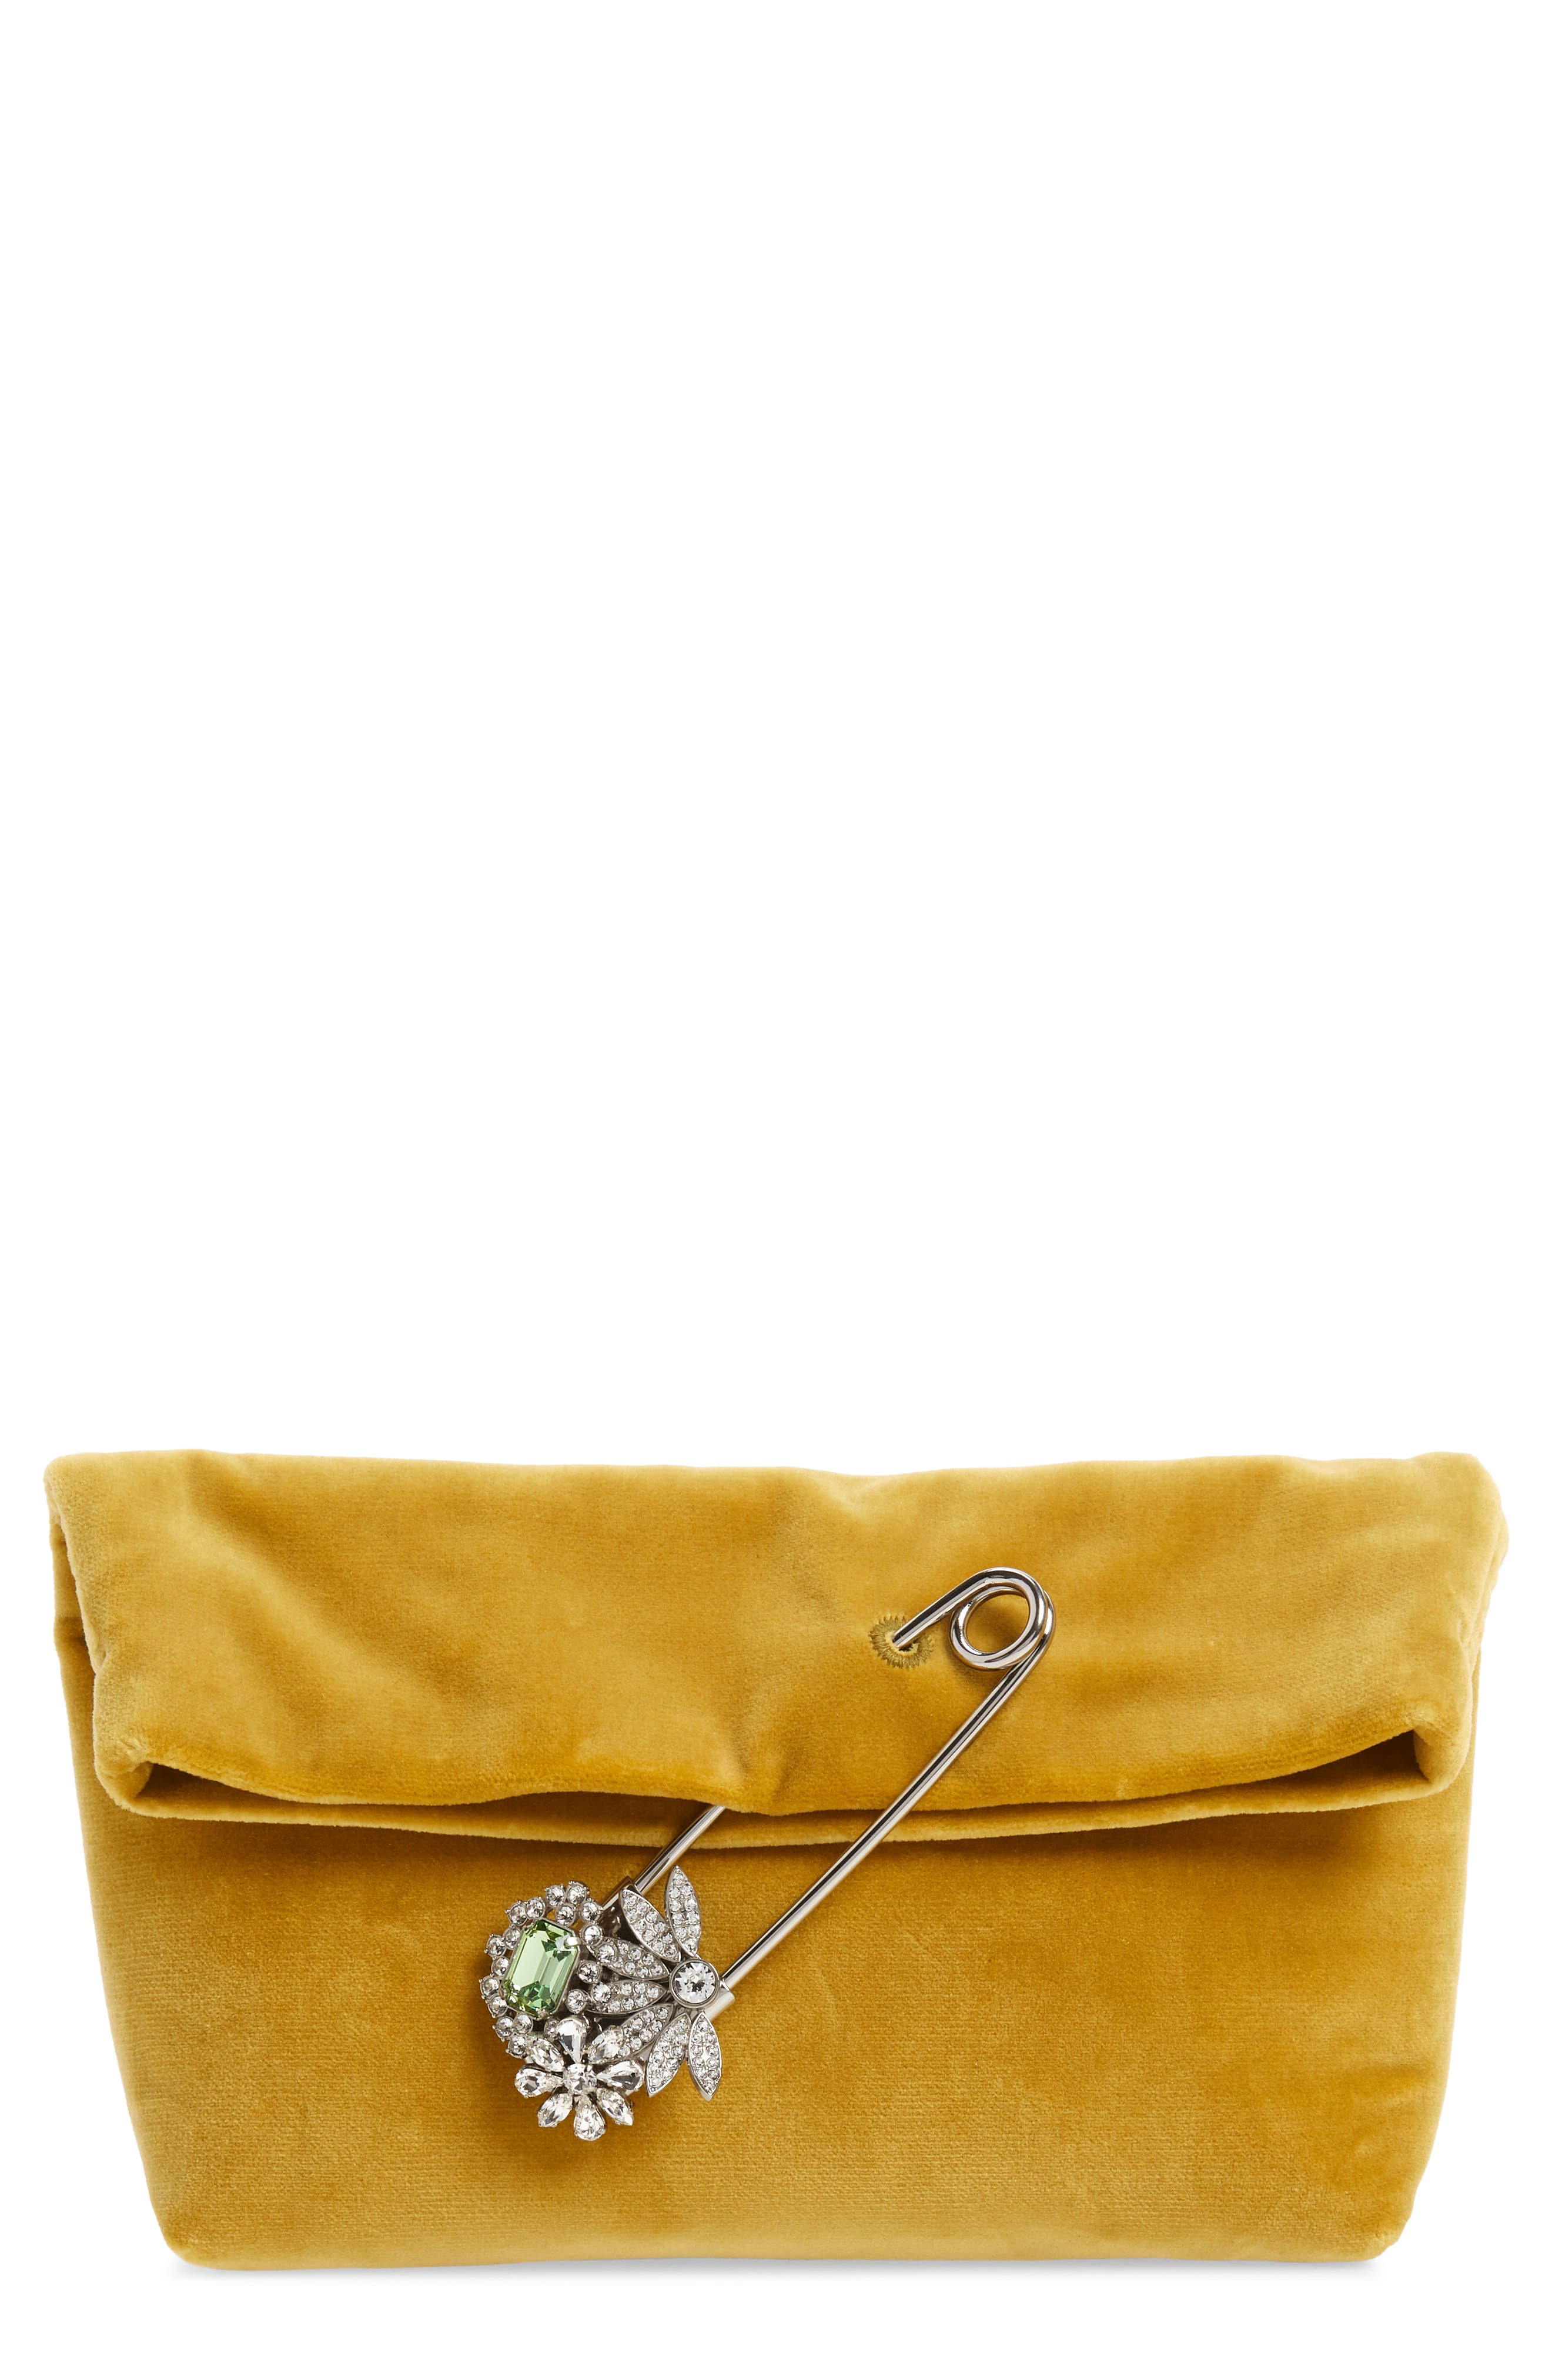 Small Safety Pin Clutch,                             Main thumbnail 1, color,                             722